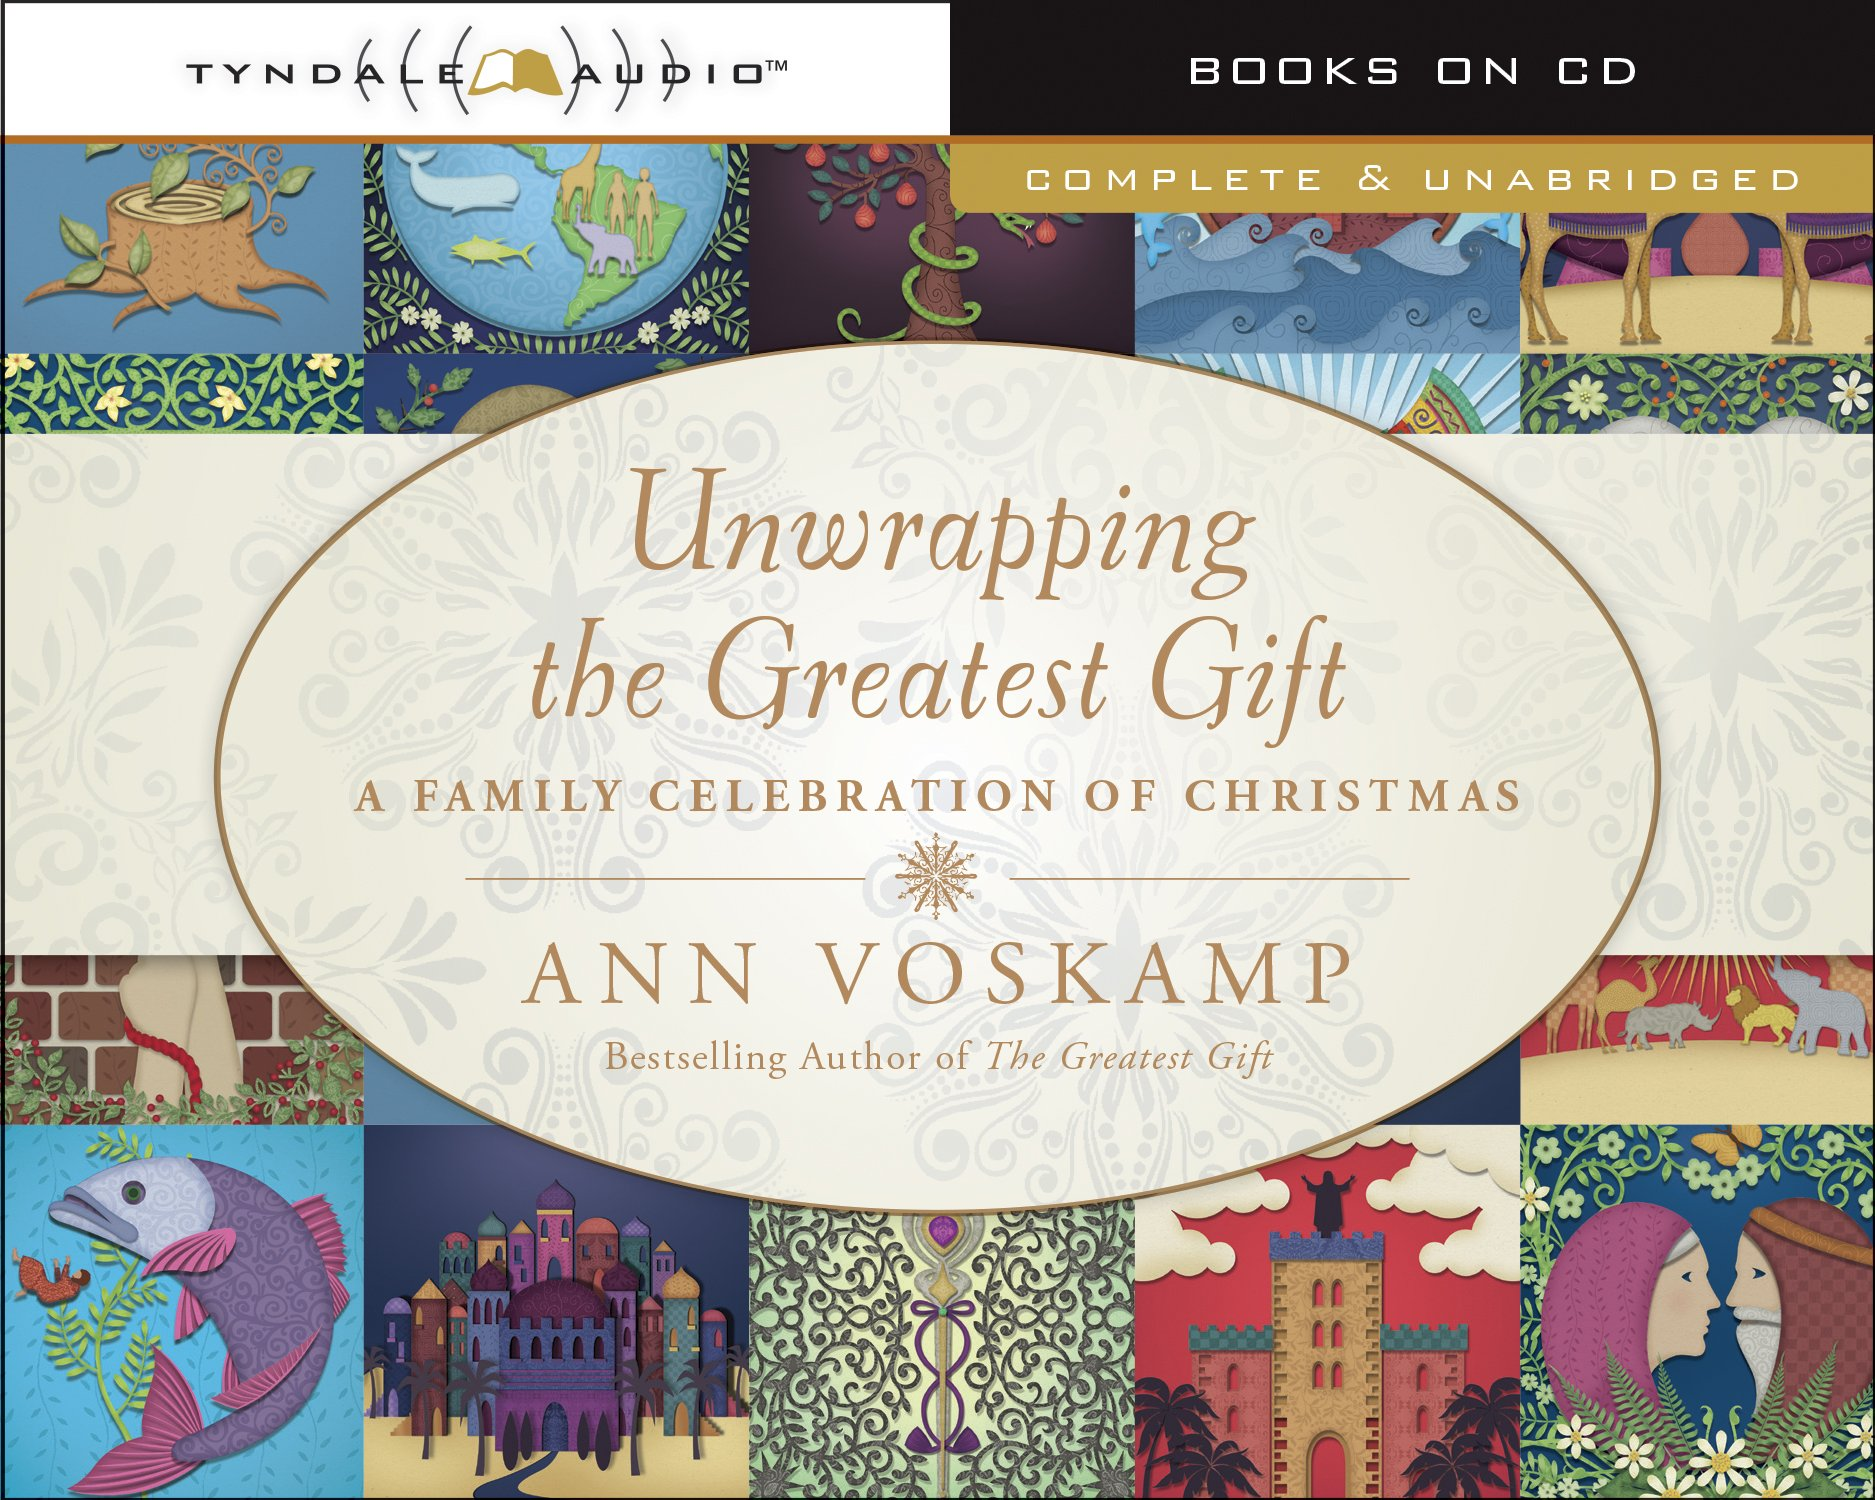 Unwrapping the Greatest Gift: A Family Celebration of Christmas ...